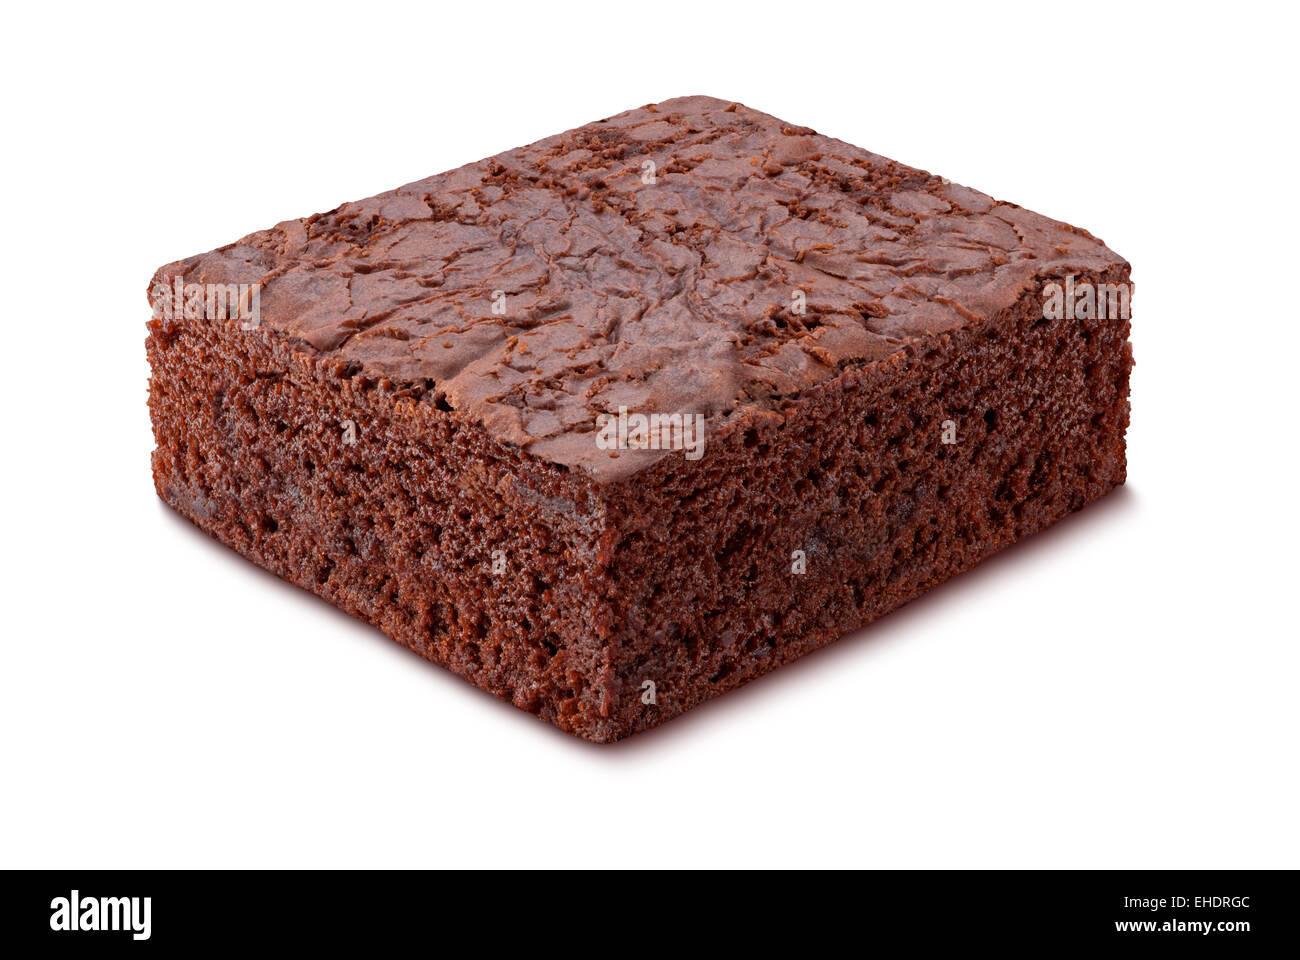 Chocolate Brownie isolated on white - Stock Image